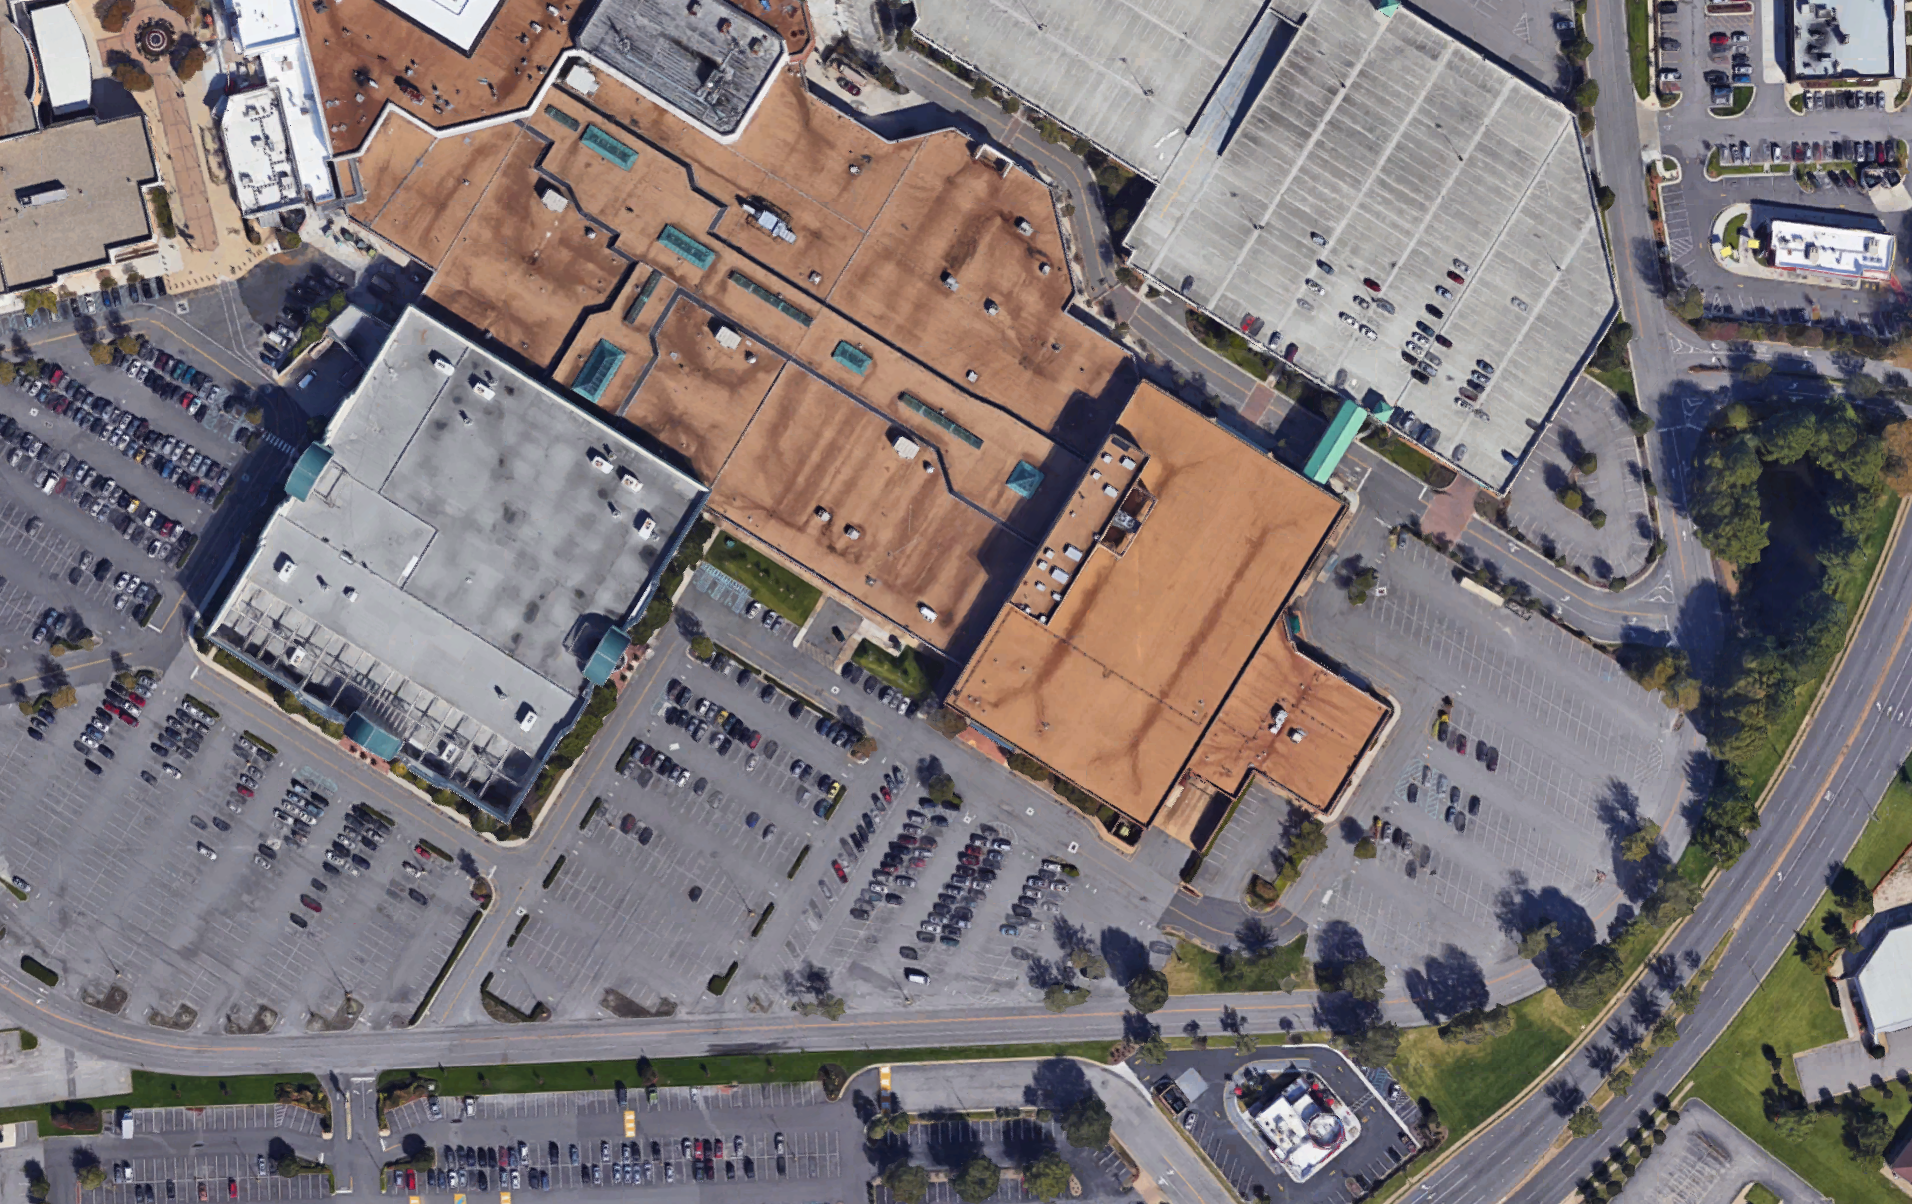 J.C. Penney's troubles are reflected in satellite images of its parking lots